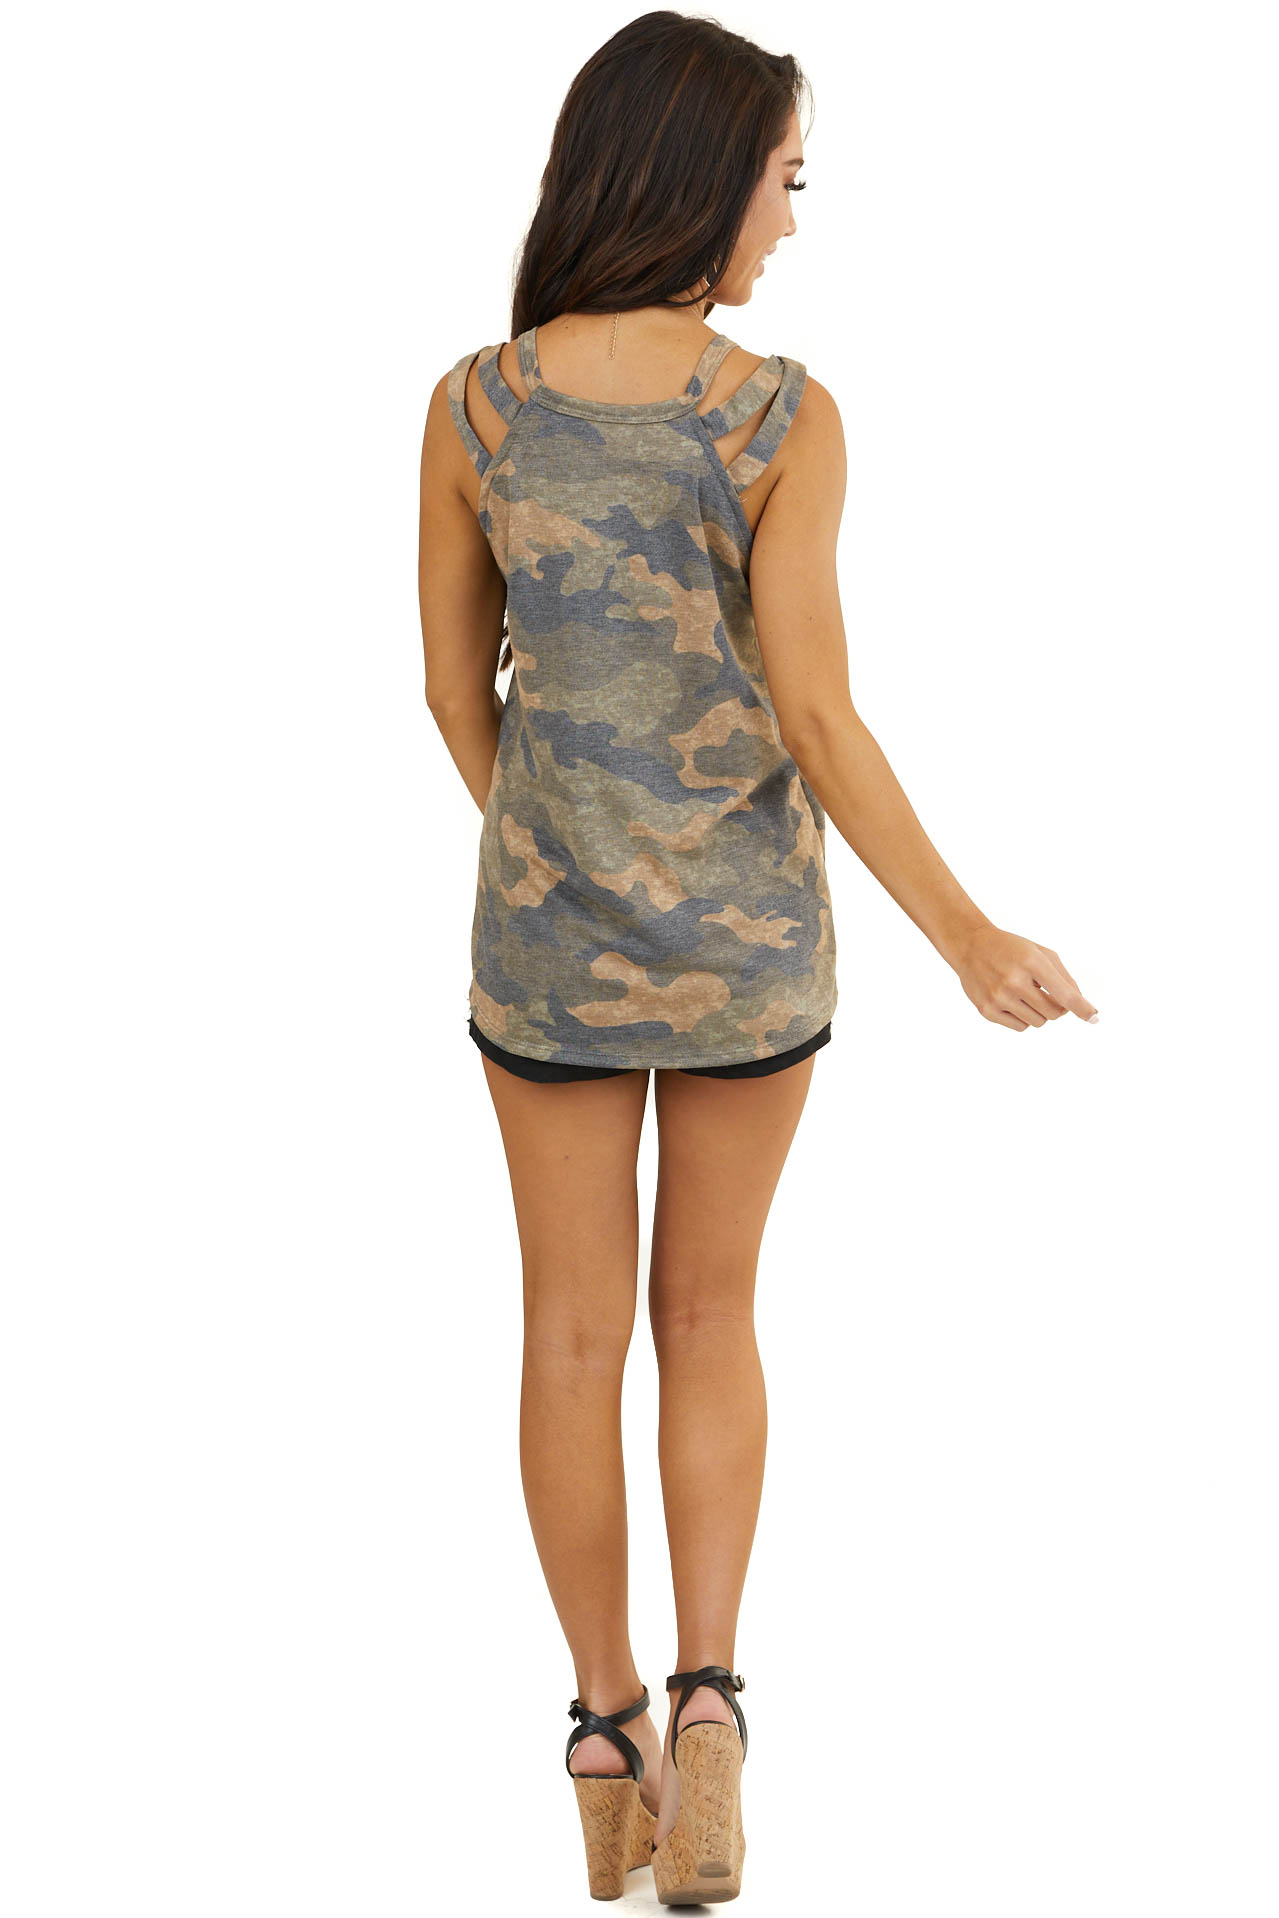 Latte Camo Print Sleeveless Knit Top with Strappy Details